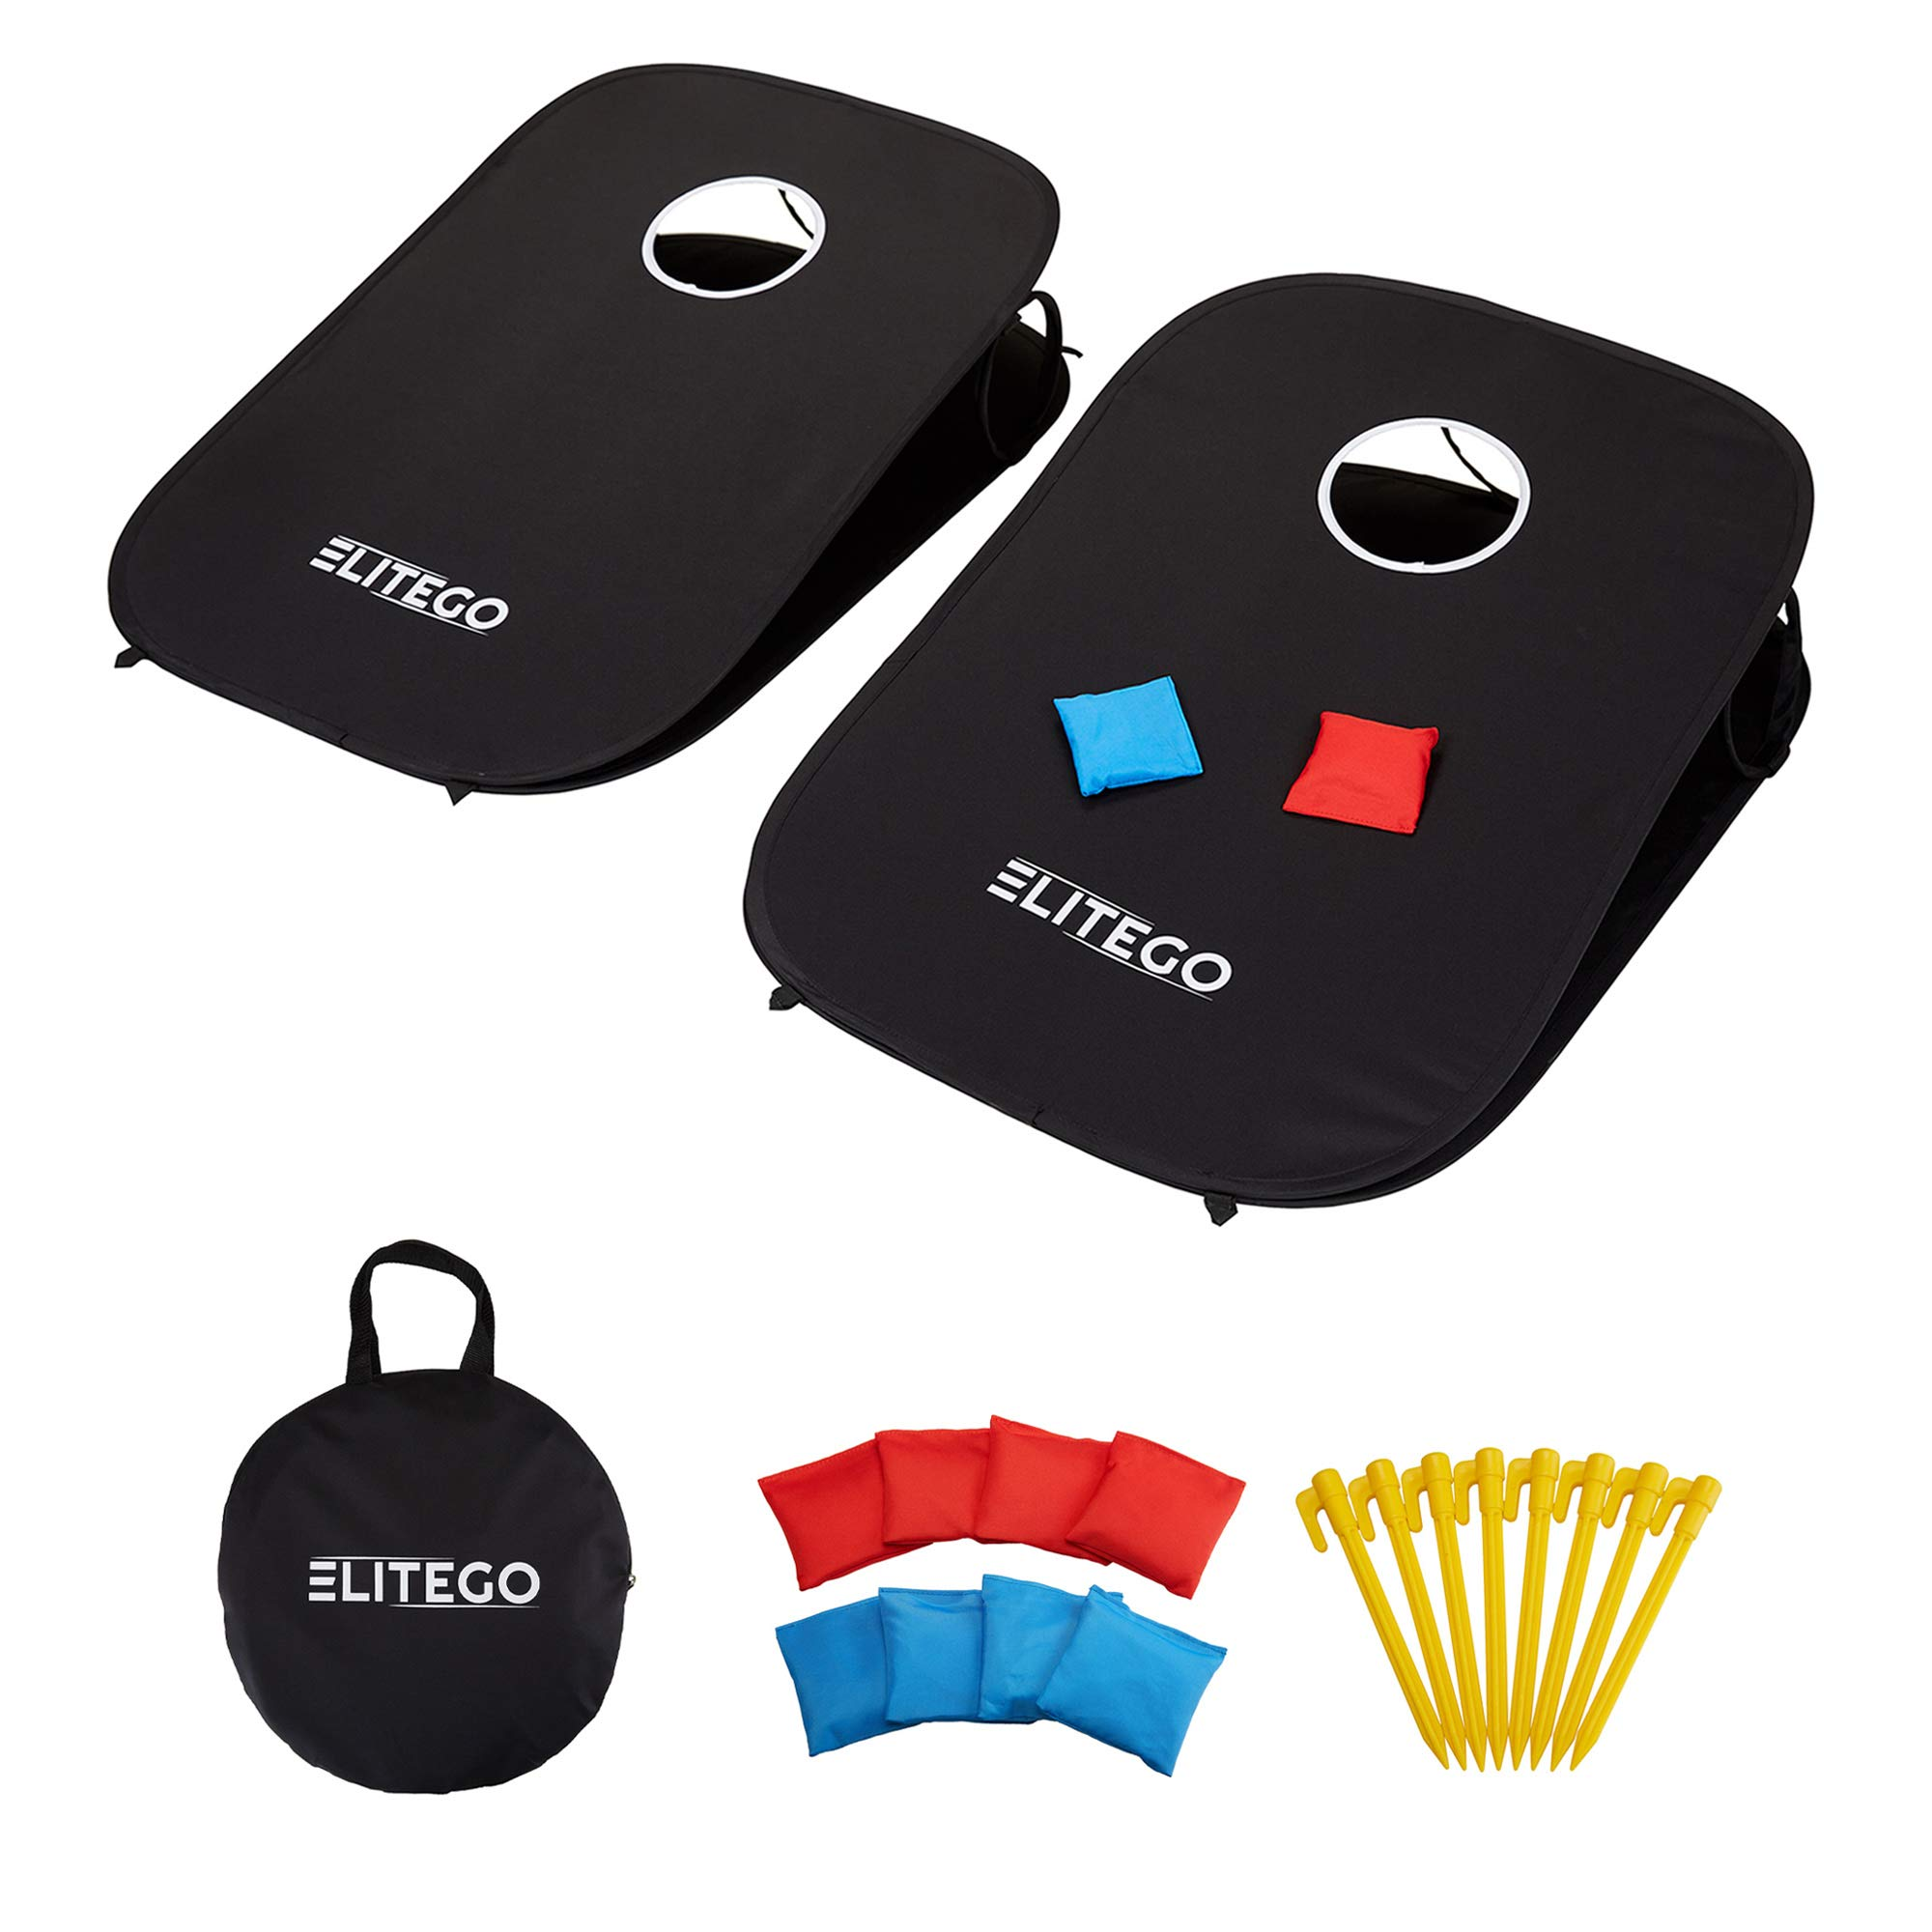 EliteGo Collapsible Portable Cornhole Boards Game Set with 8 Cornhole Bean Bags - (3 x 2 feet) (Black) by EliteGo